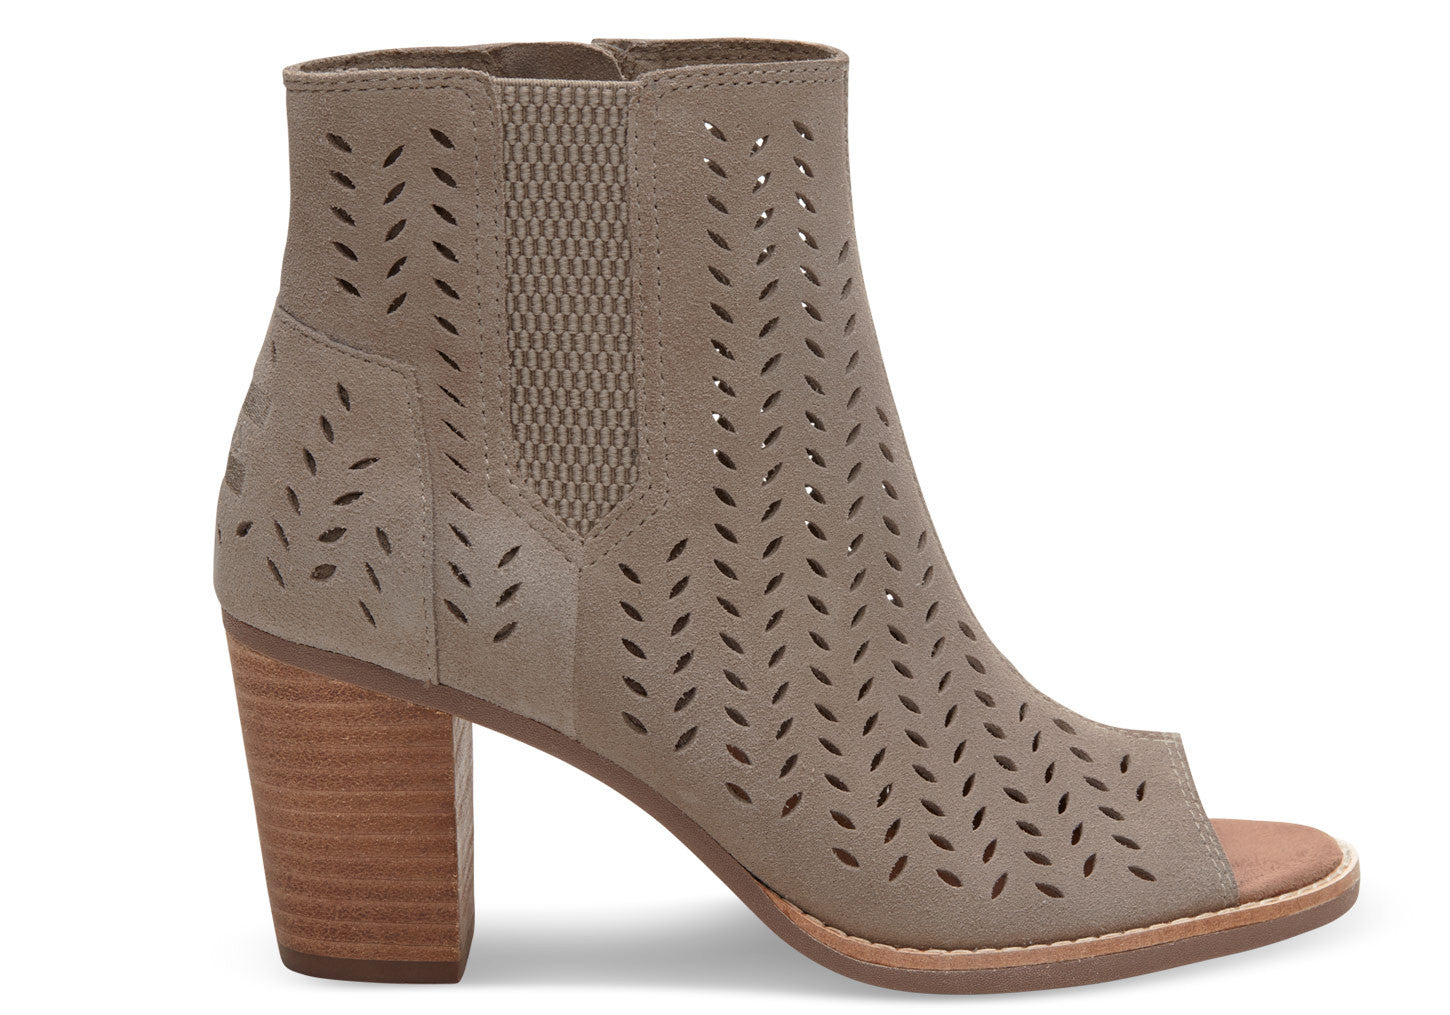 TOMS DESERT TAUPE SUEDE PERFORATED LEAF